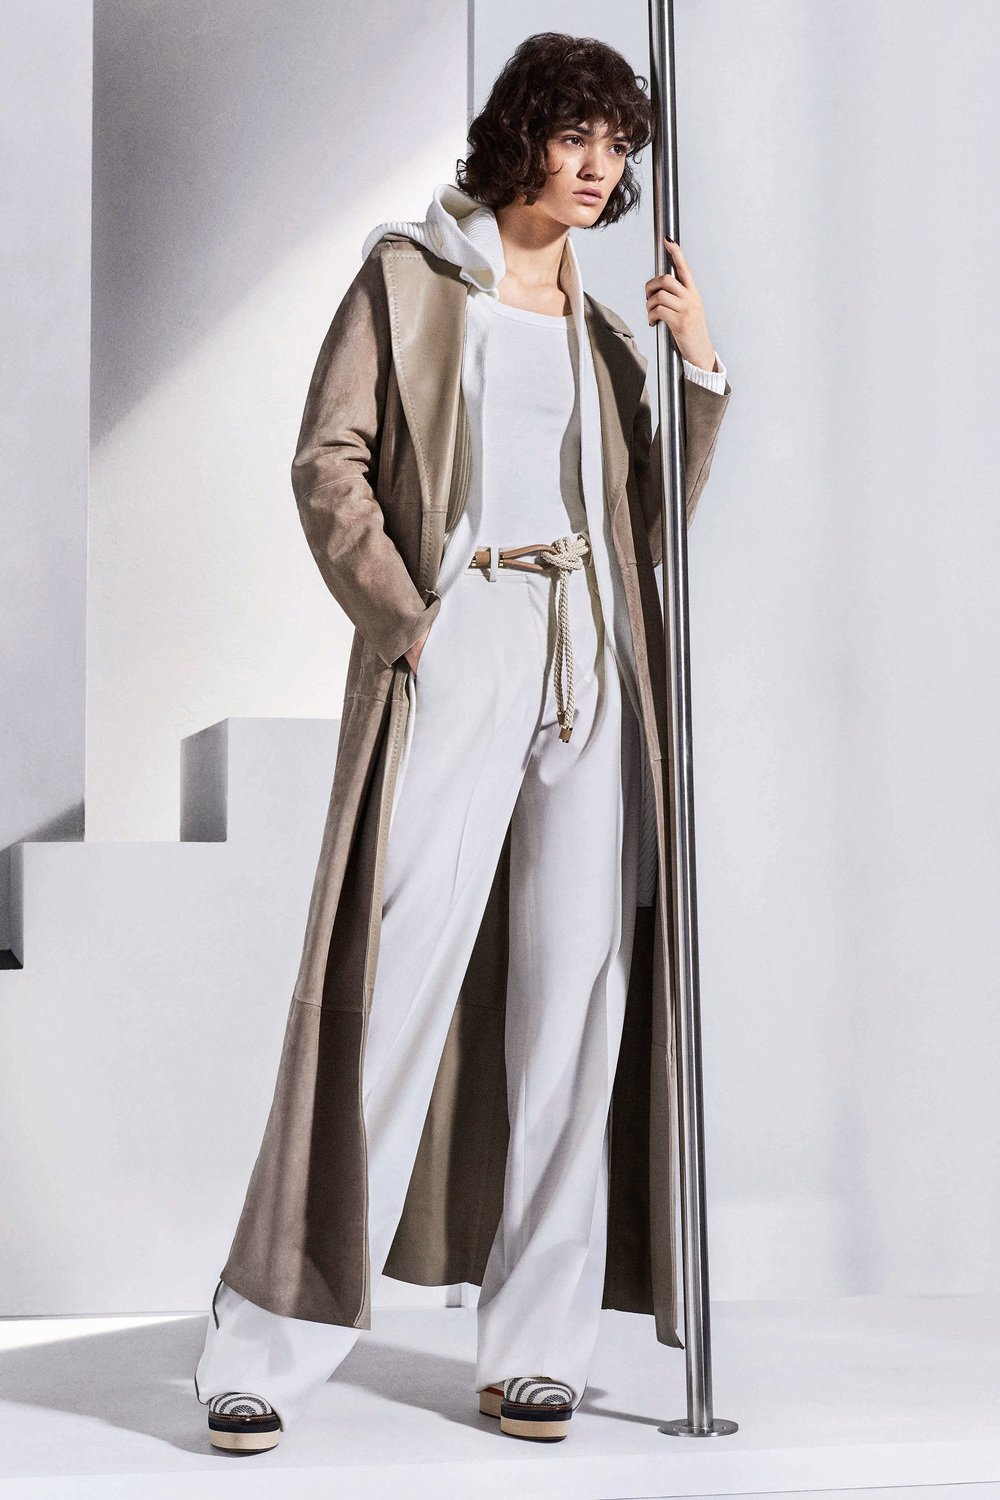 10-Max-Mara-Resort-18.jpg